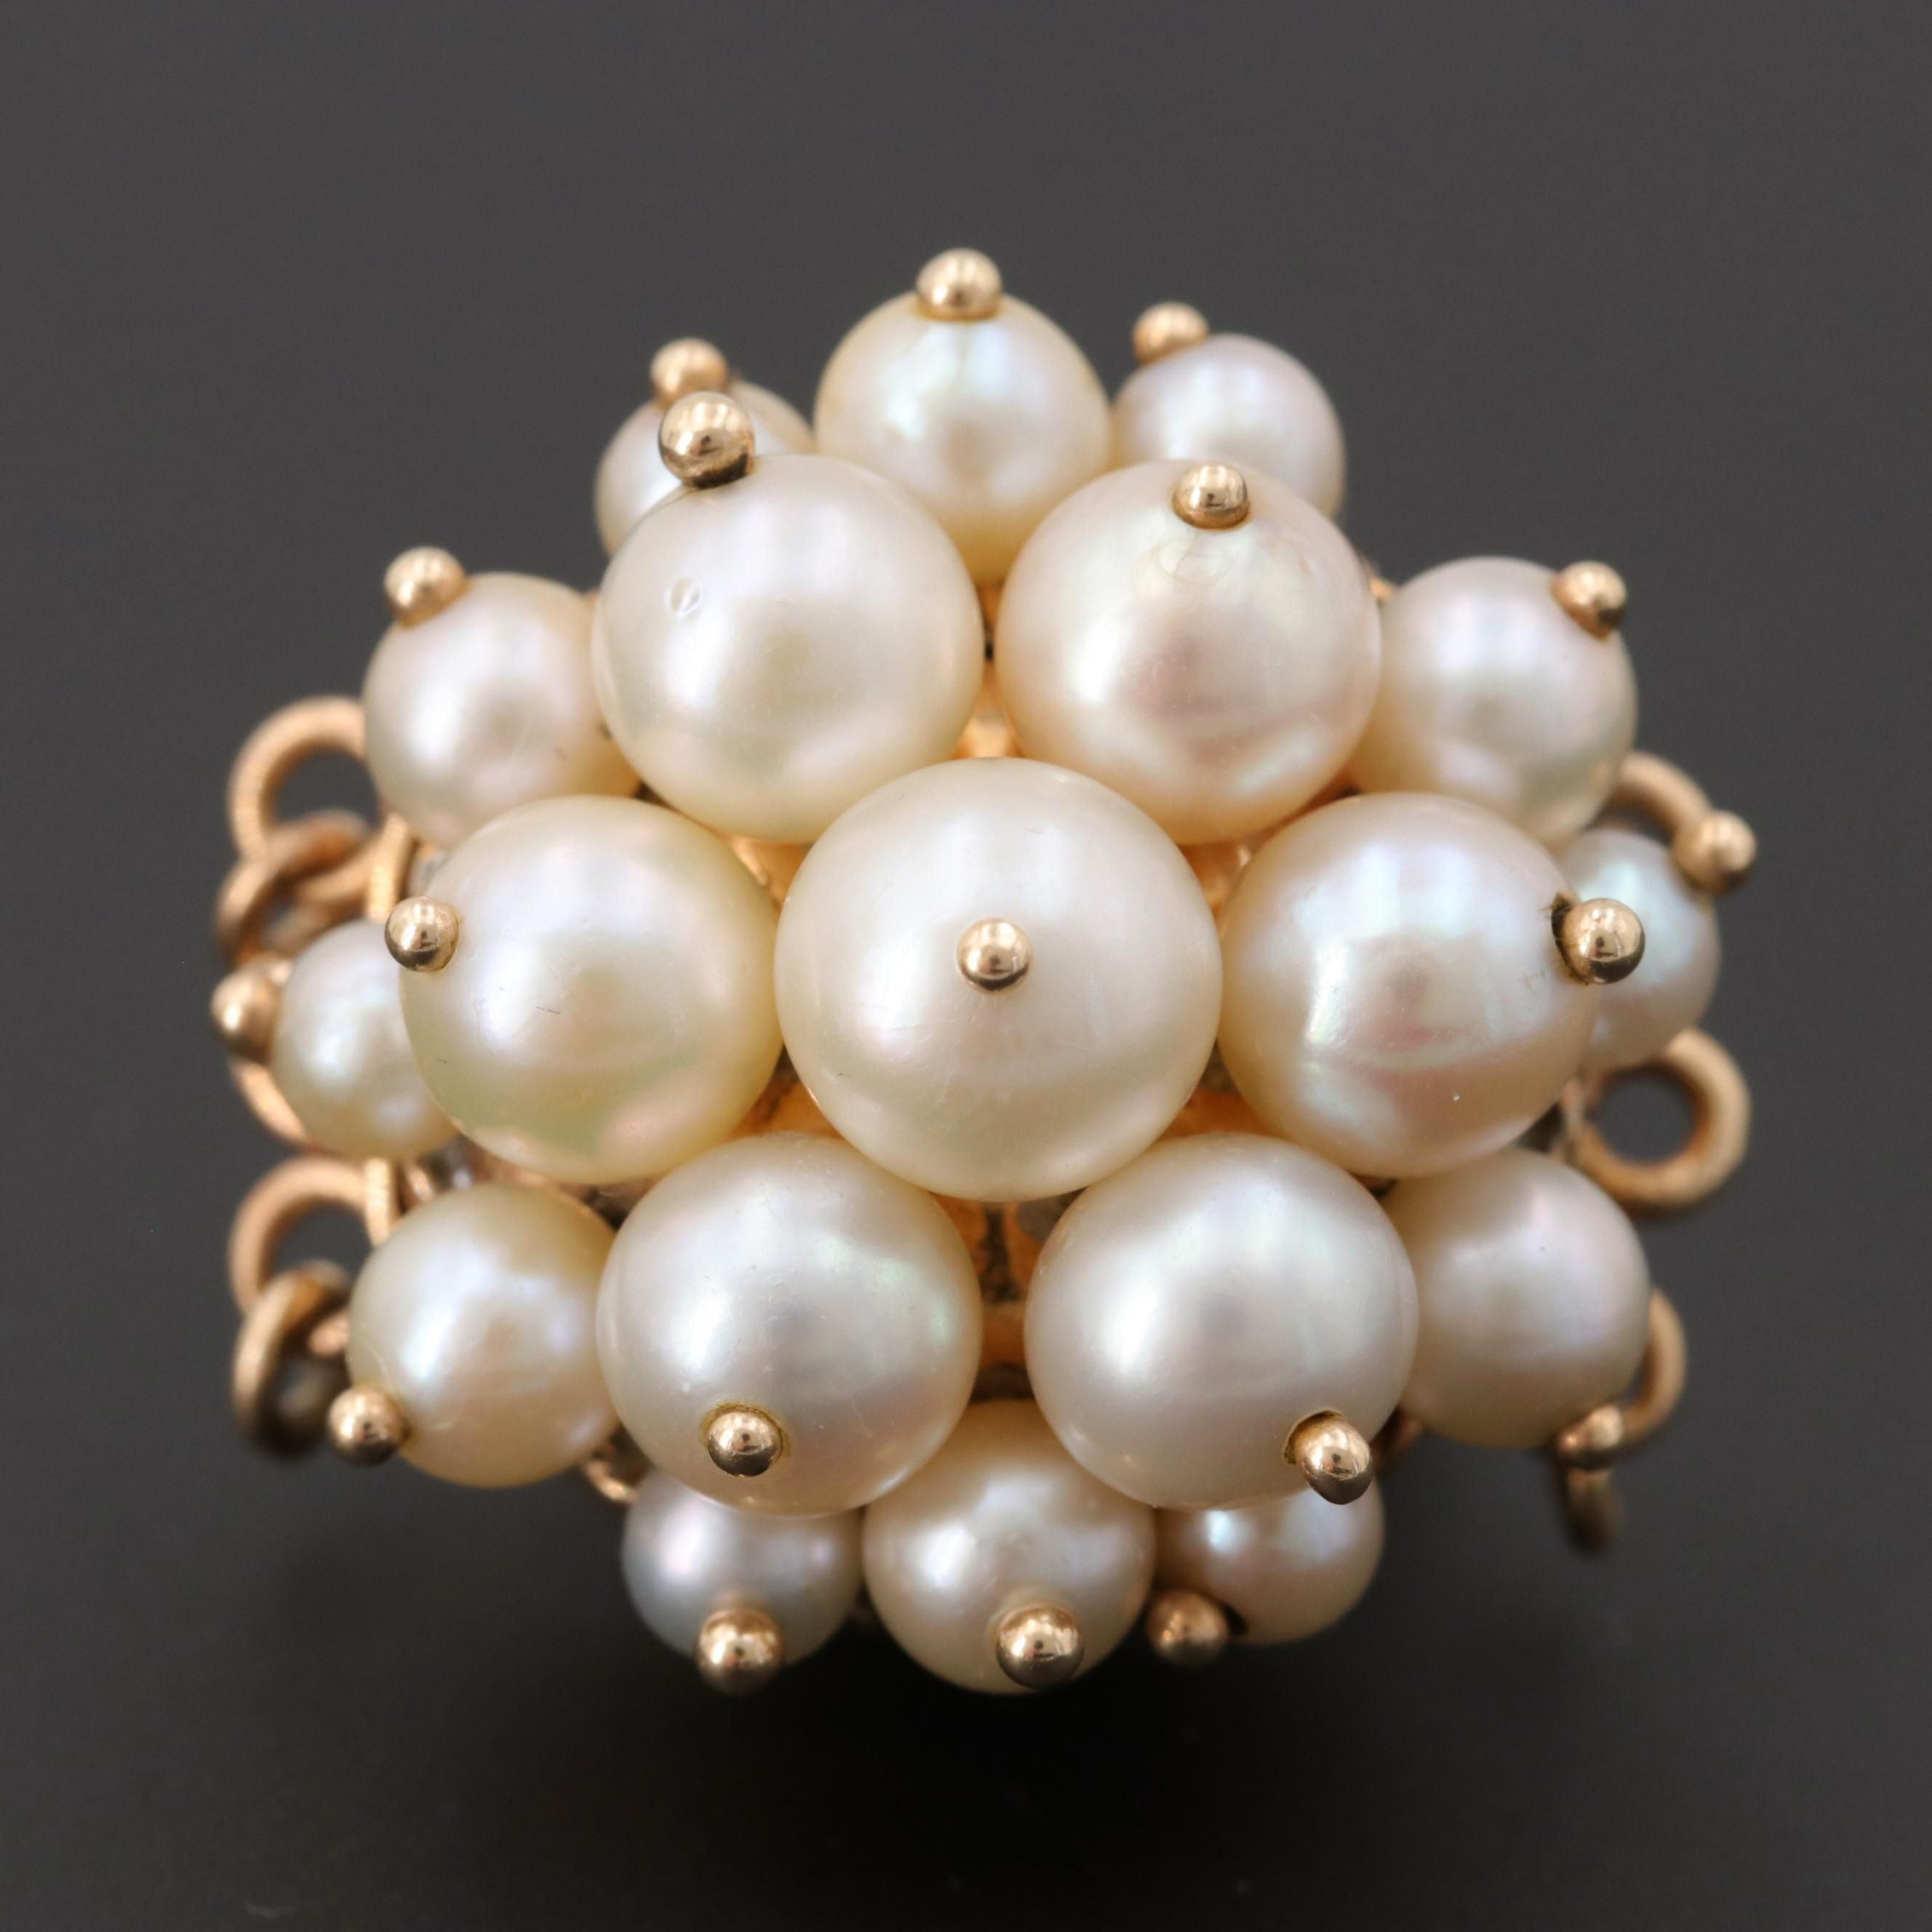 Vintage 14K Yellow Gold Cultured Pearl Triple-Strand Jewelry Clasp